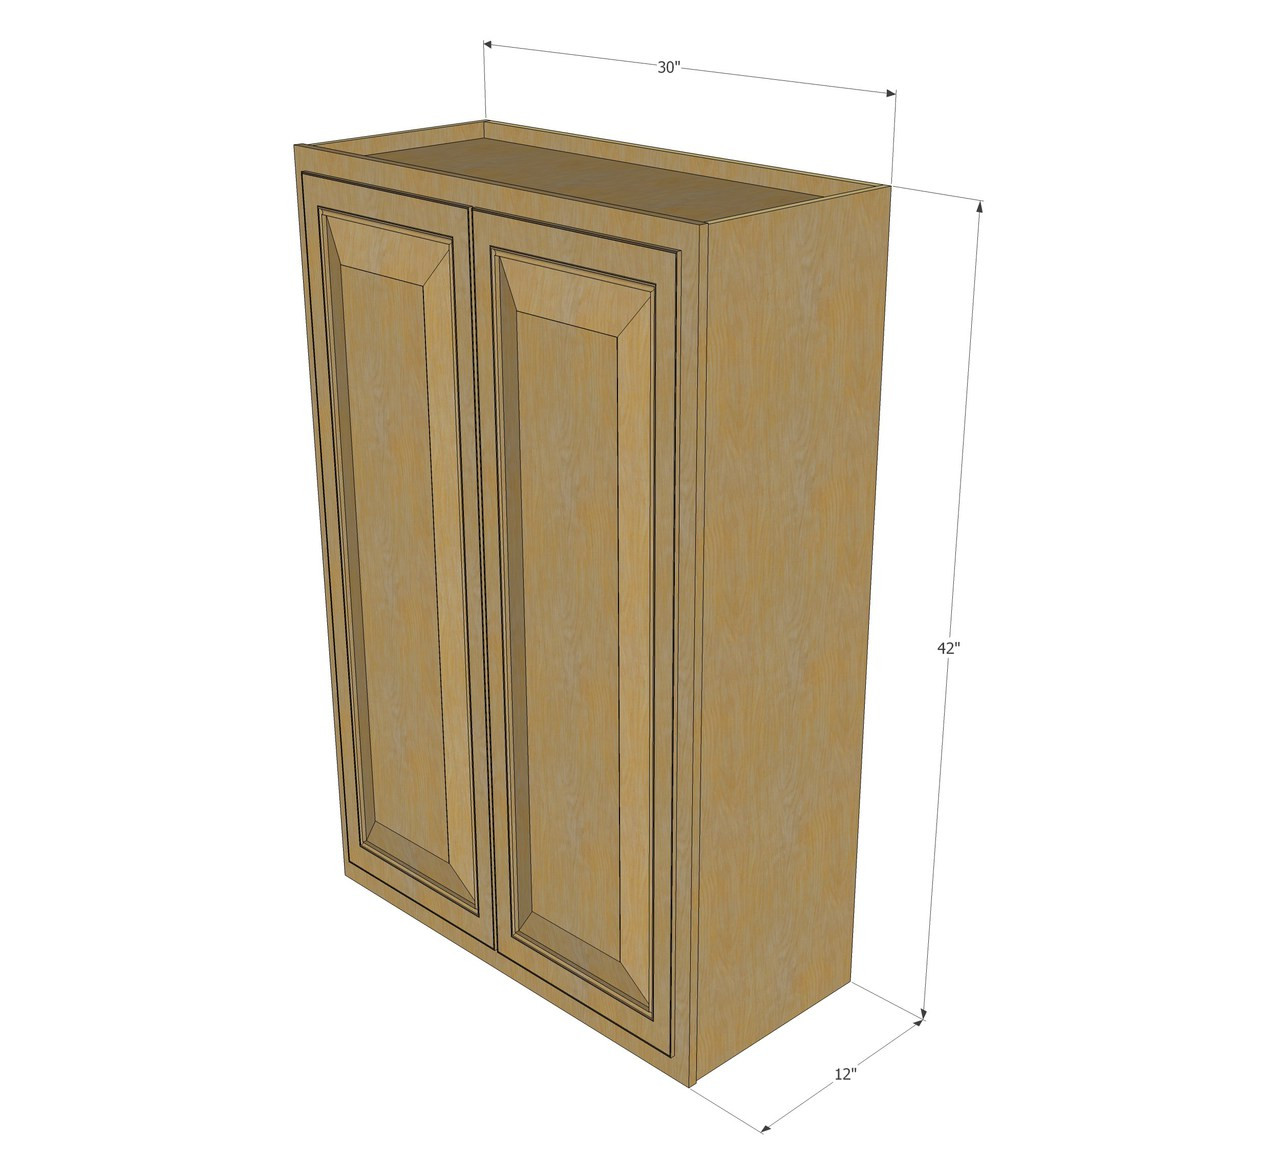 large double door regal oak wall cabinet - 30 inch wide x 42 inch